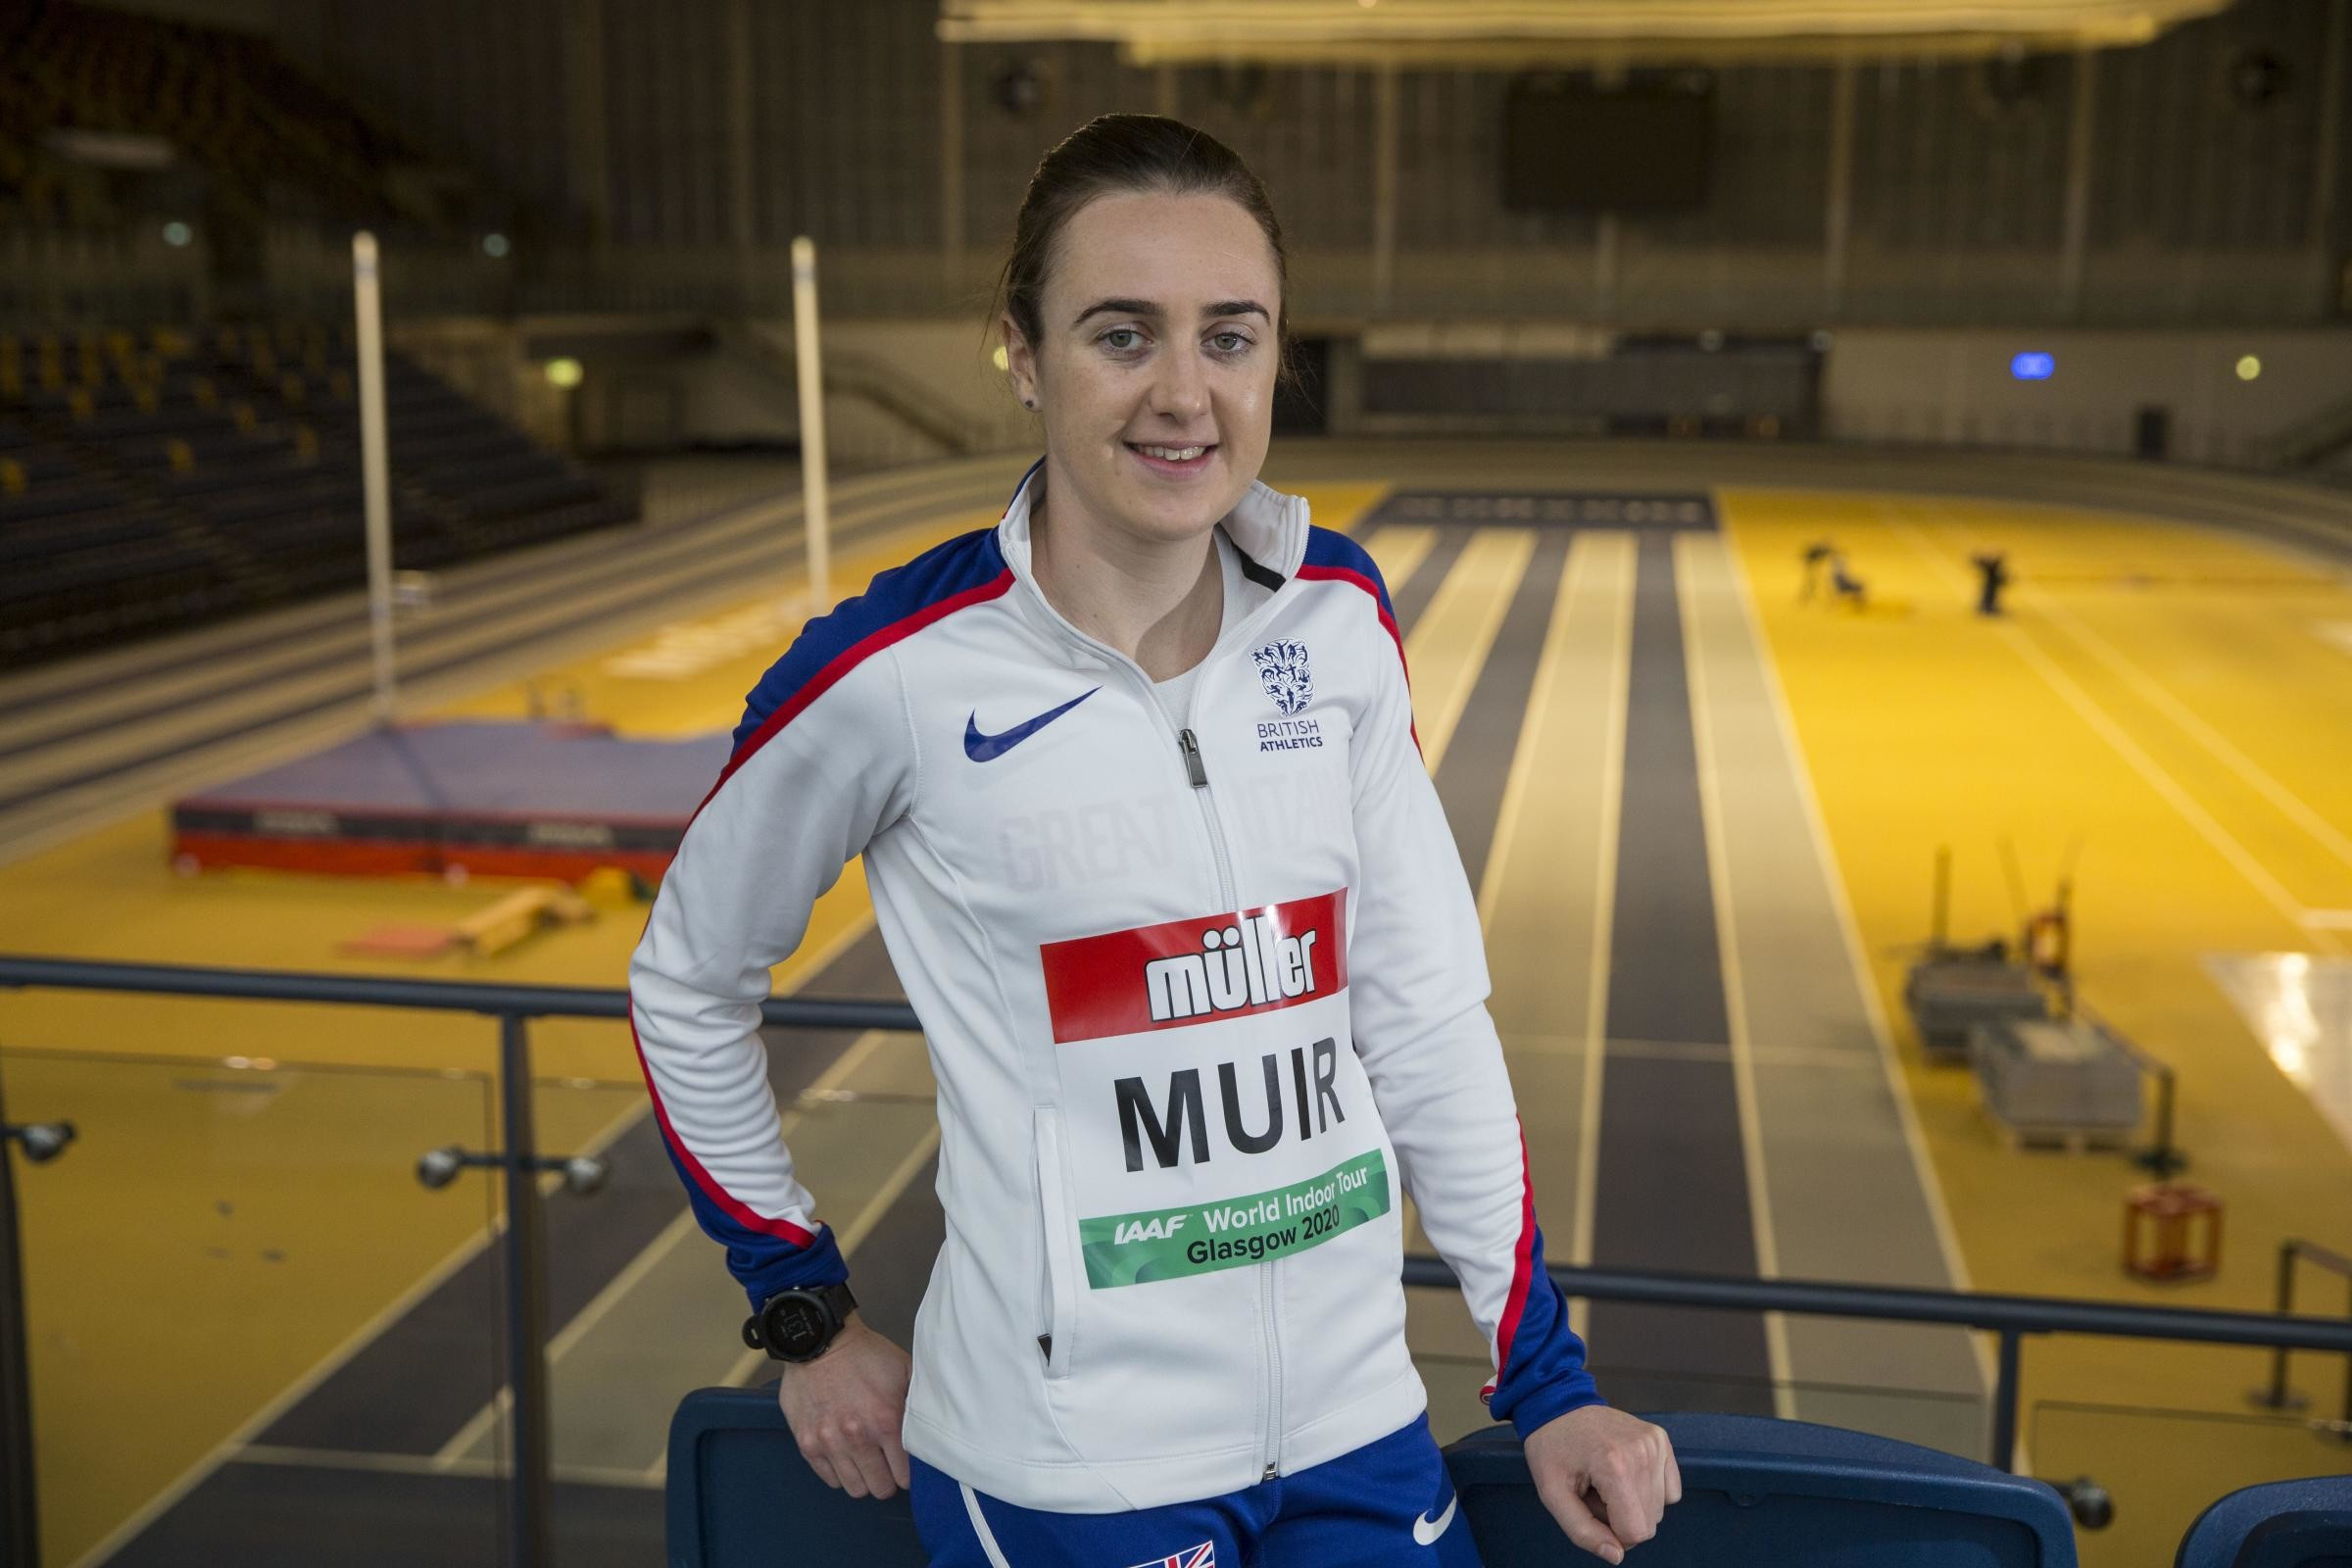 Britain's Laura Muir and Uganda's Joshua Cheptegei among World Athletics awards nominees